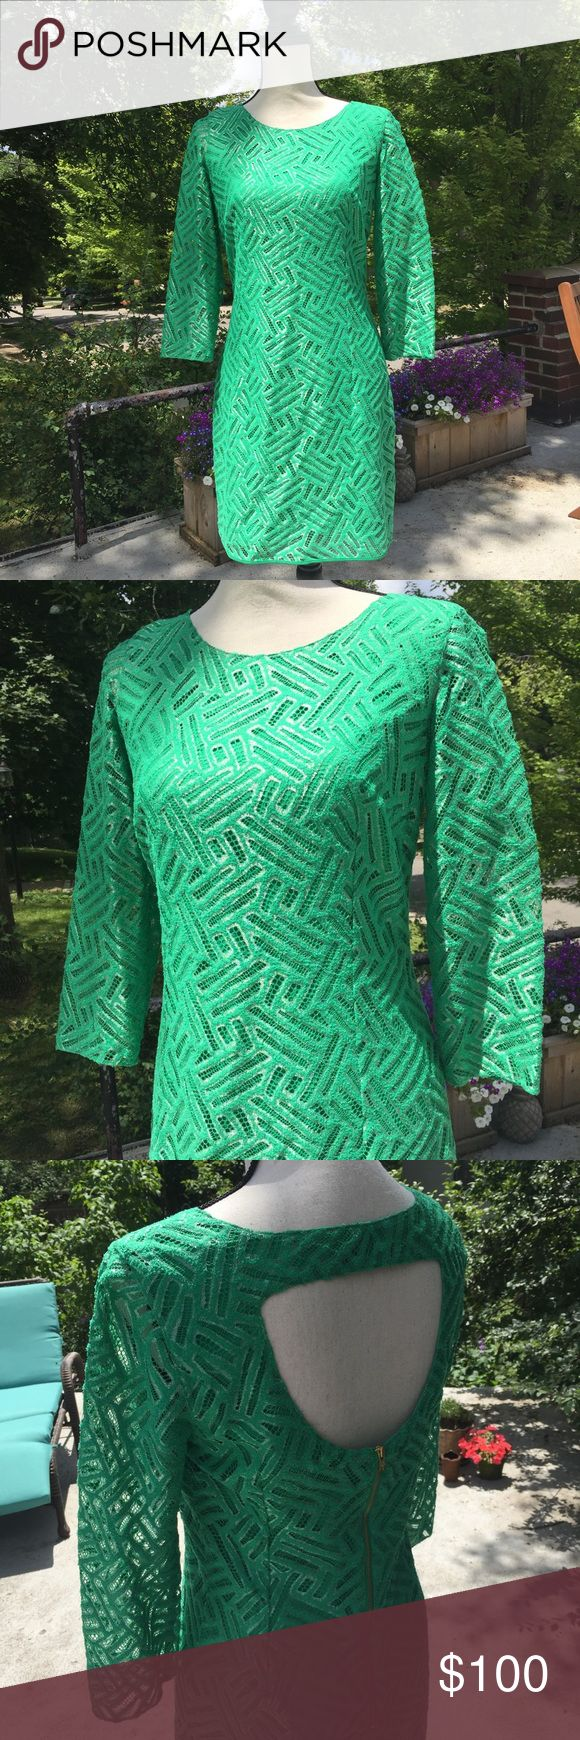 Lilly Pulitzer sexy green dress Worn once / like new. Lots of great details including stunning color, sheer sleeves, & back detail. Size 6. Only selling because doesn't fit. Great deal. Lilly Pulitzer Dresses